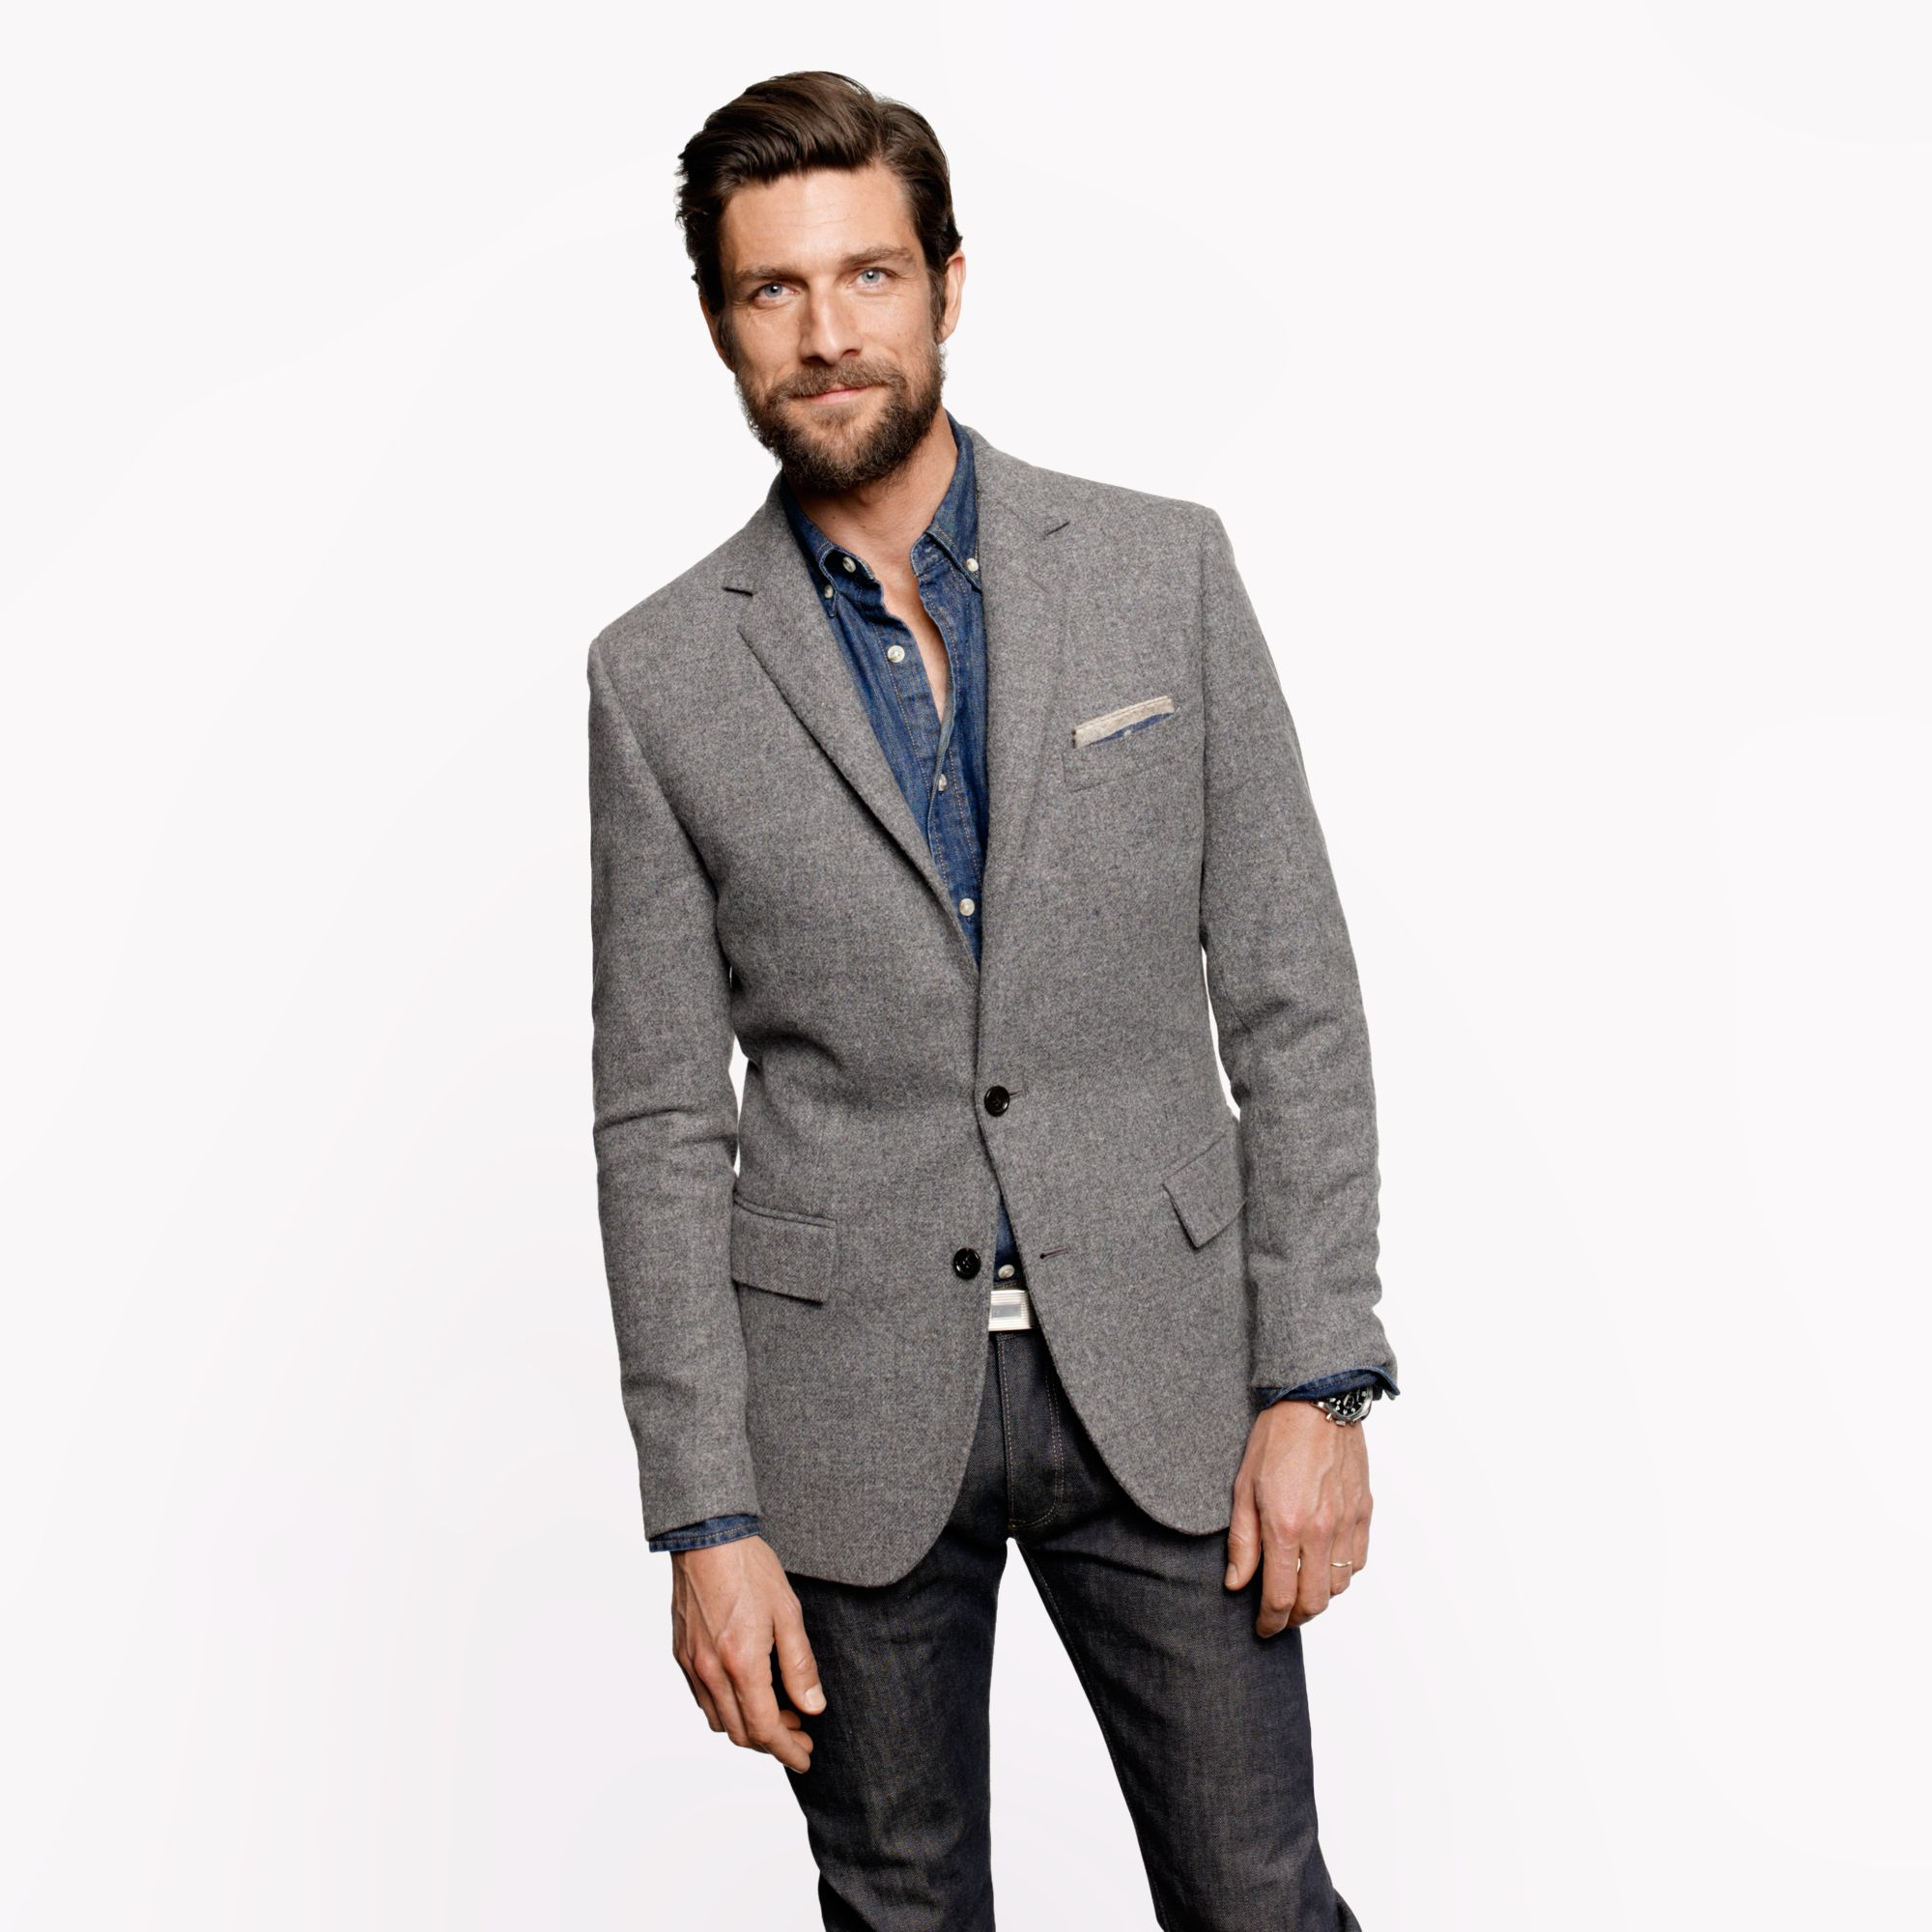 A gray suit or sportcoat ranks very highly on our list for its versatility and timelessness. Even if you'd never dream of stepping foot inside a cubicle, a gray jacket in wool and, perhaps, a seasonal fabric or two will see plenty of use.